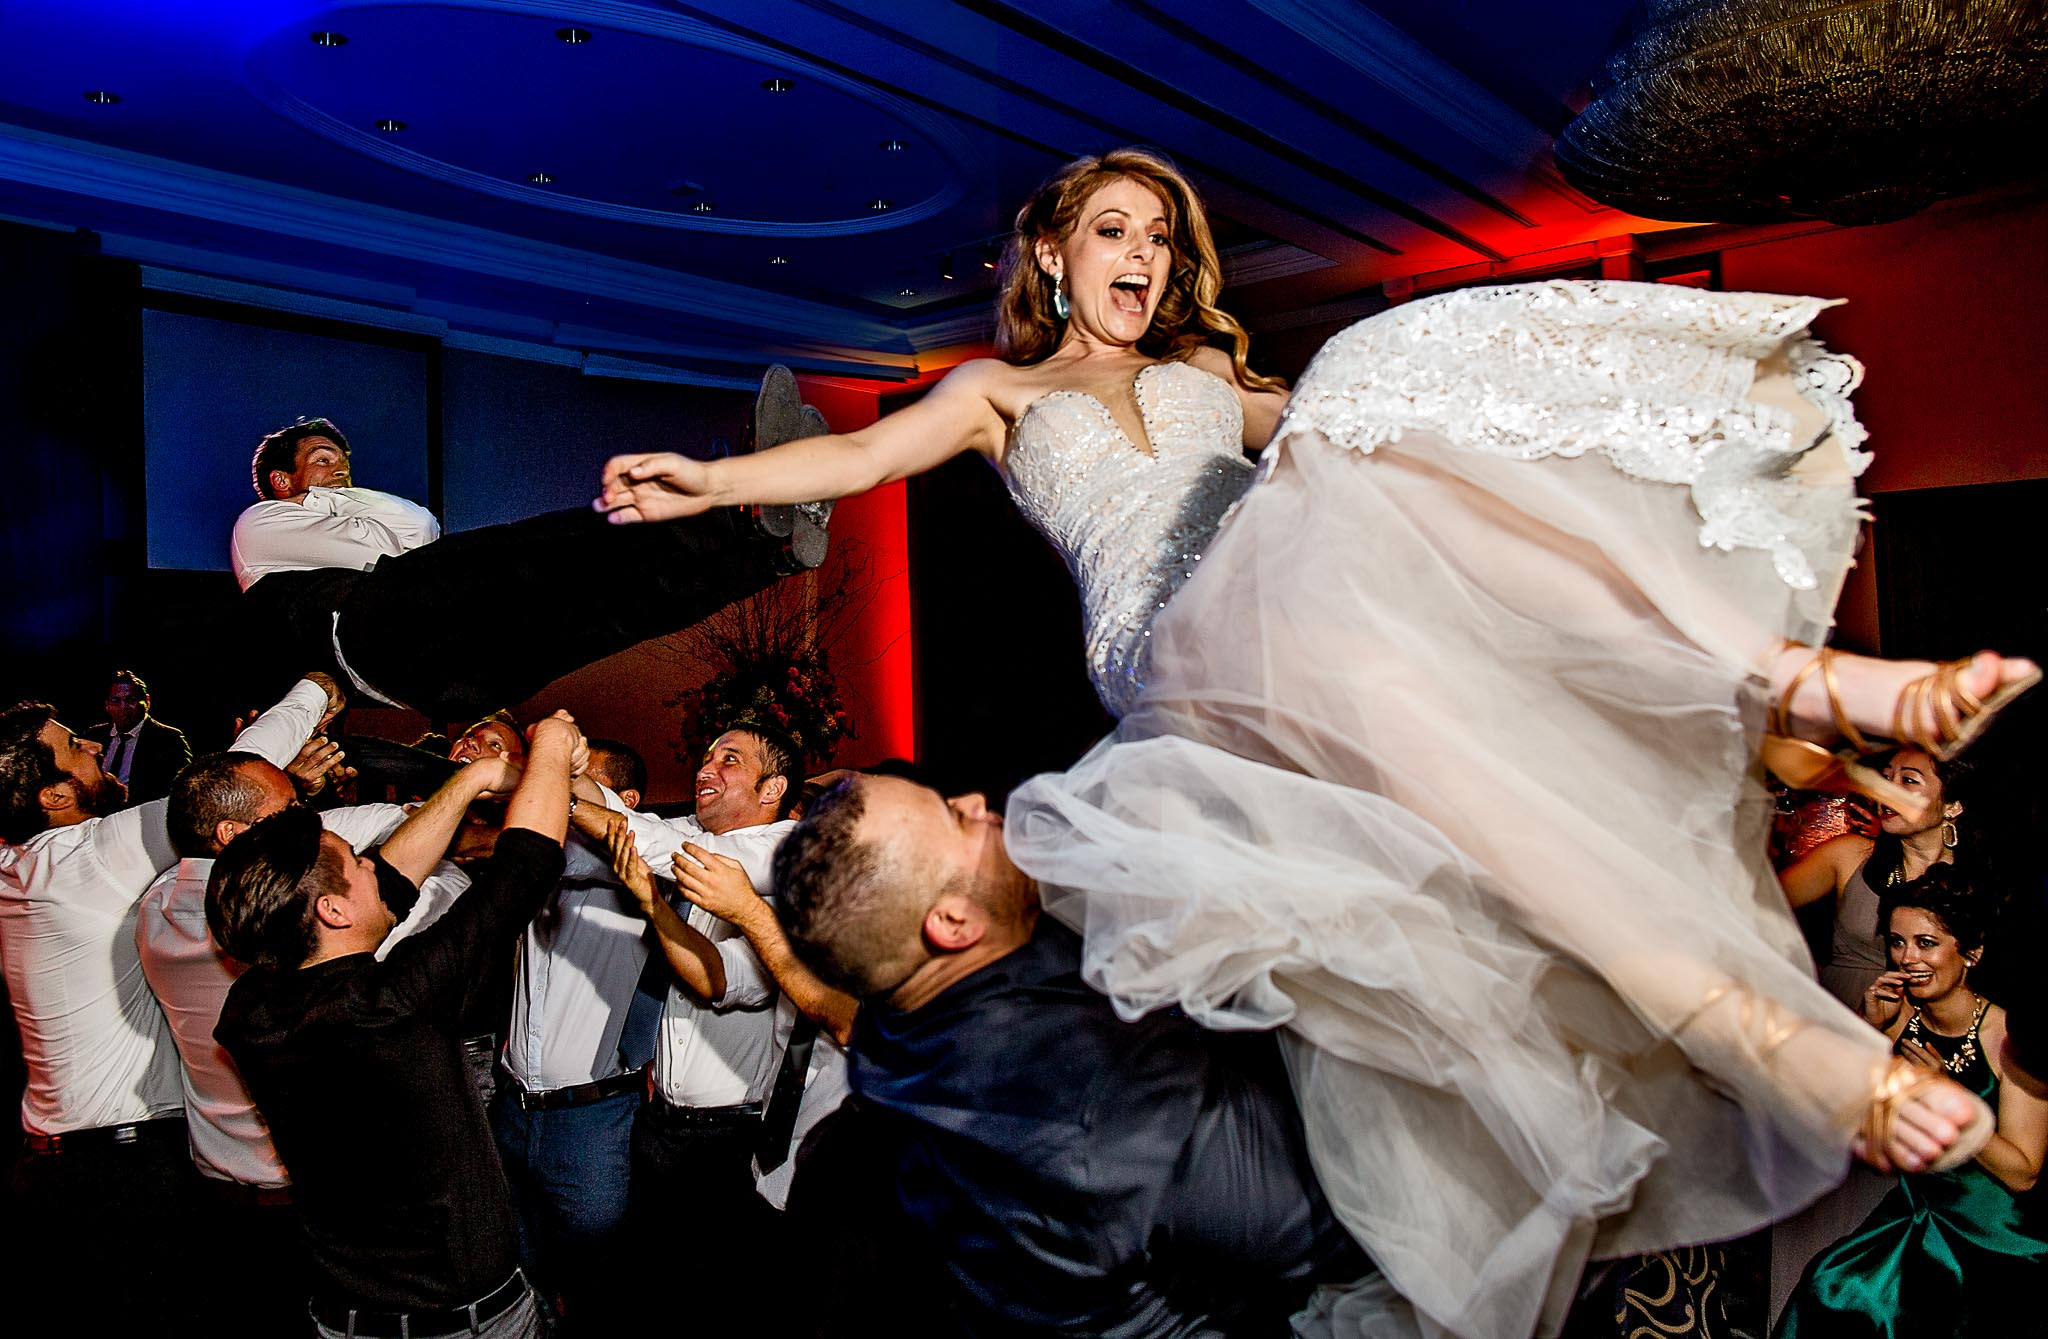 Bride and groom flying over dance floor in Peru at reception